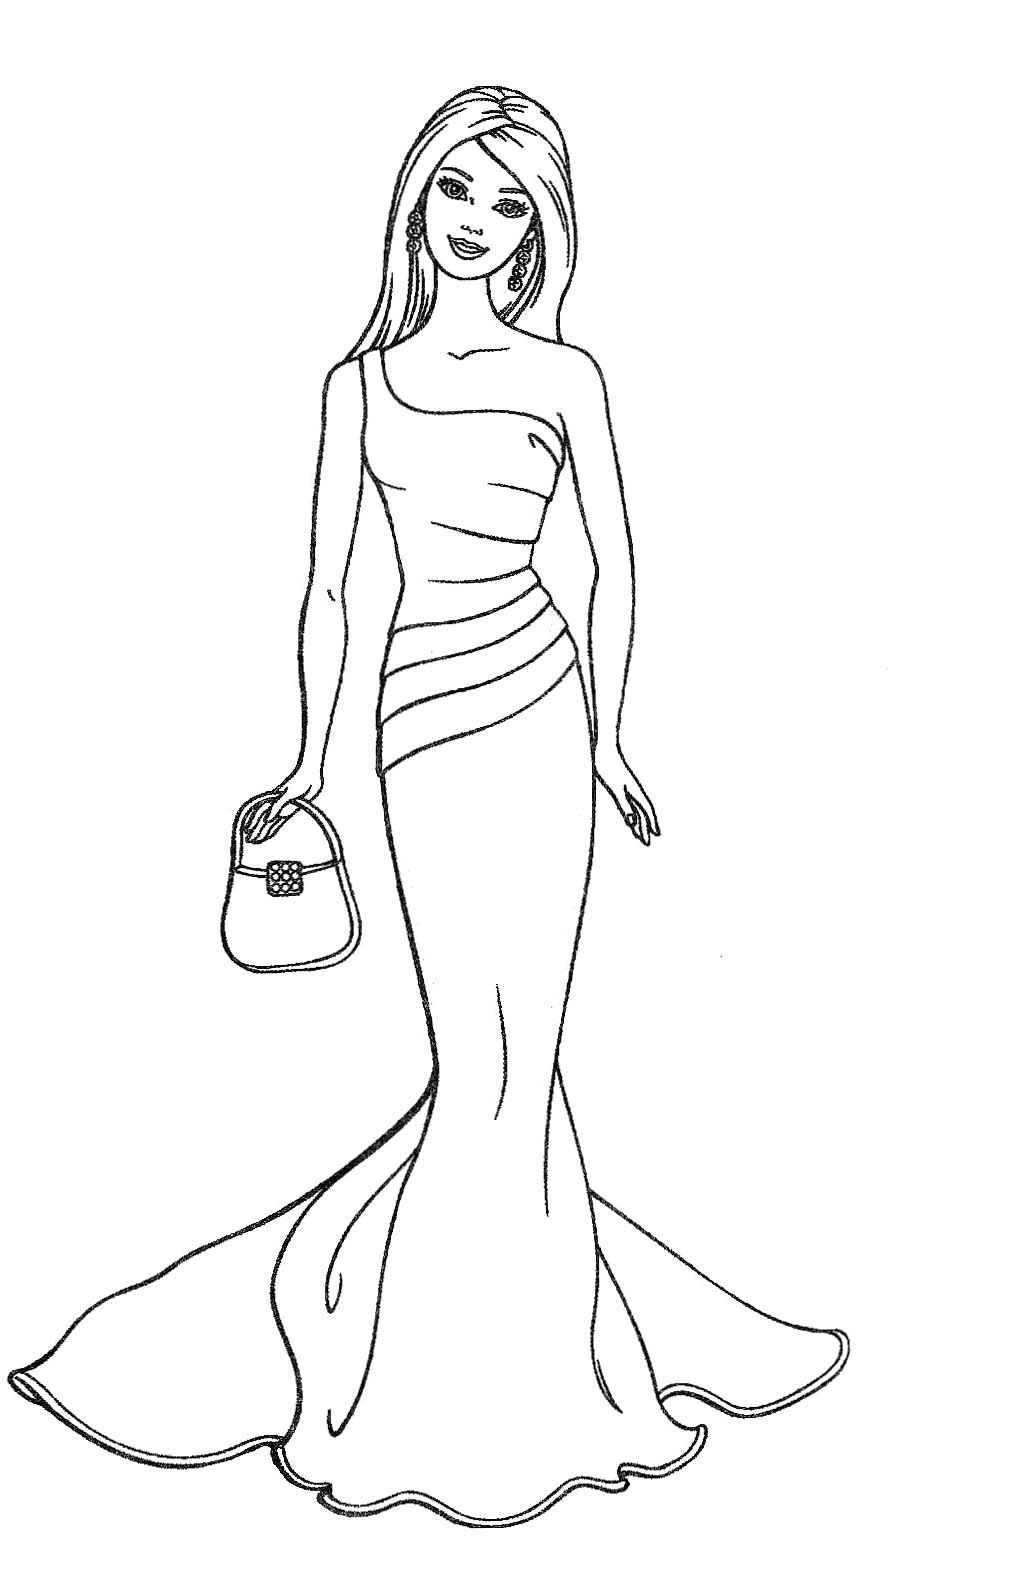 Barbie Fashion Coloring Page Free Online Printable Pages Sheets For Kids Get The Latest Images